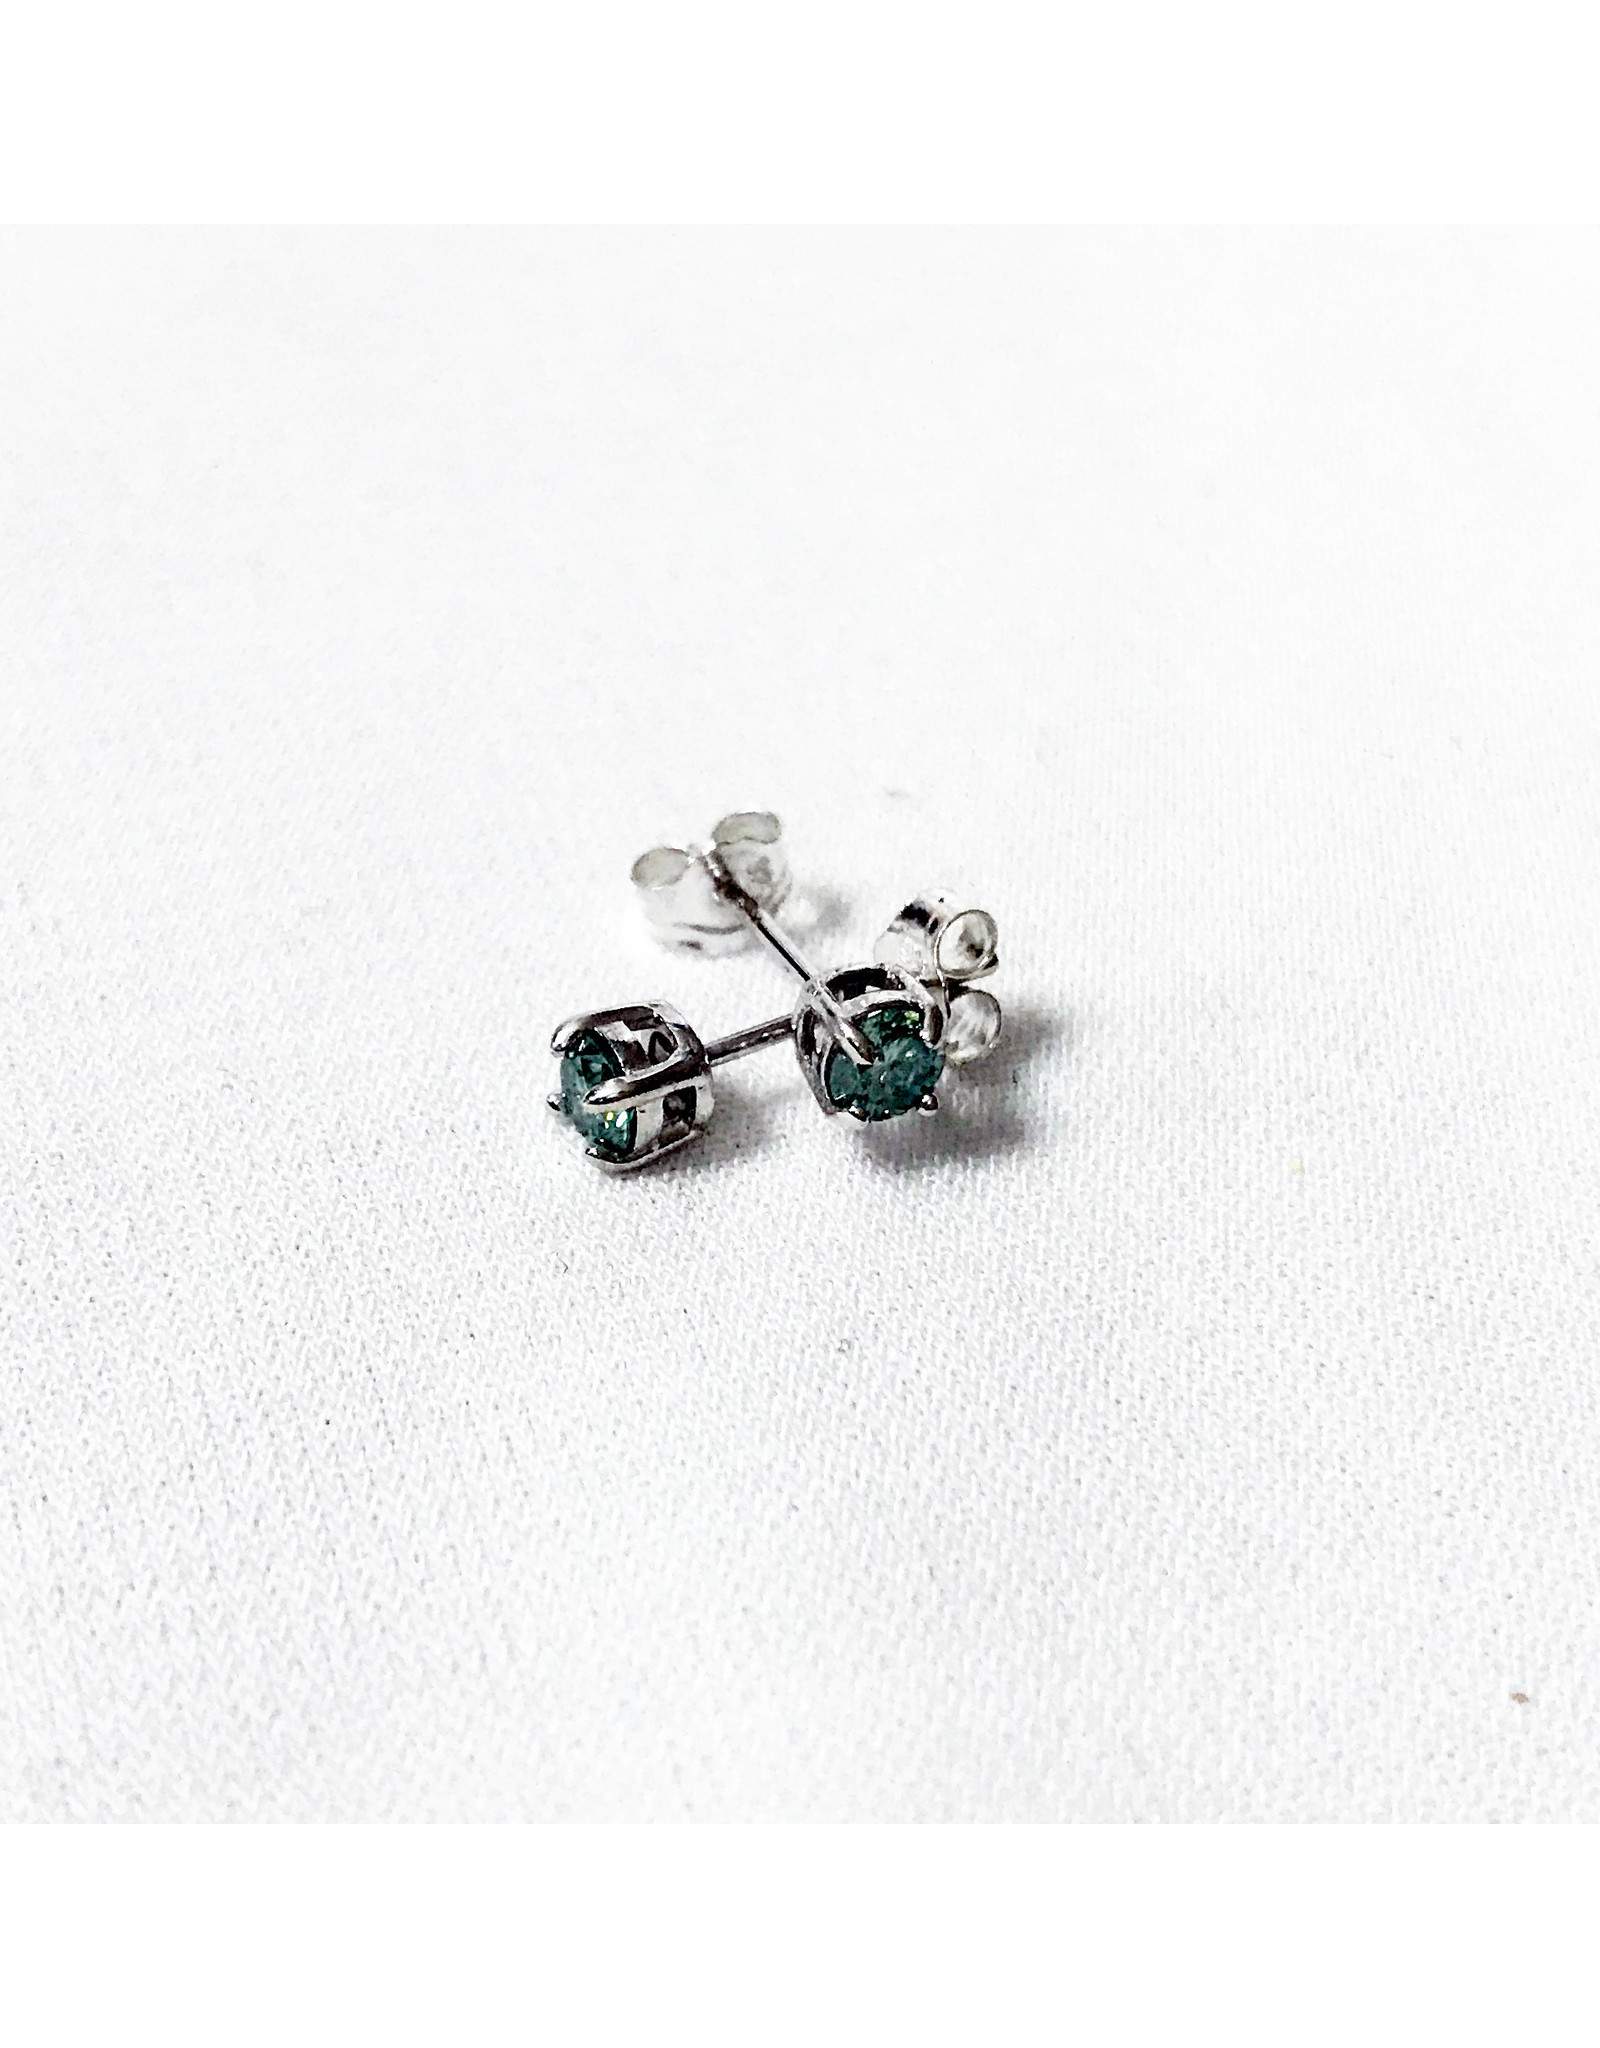 Chris Gillrie Stardust Tiny Studs, Moissanite